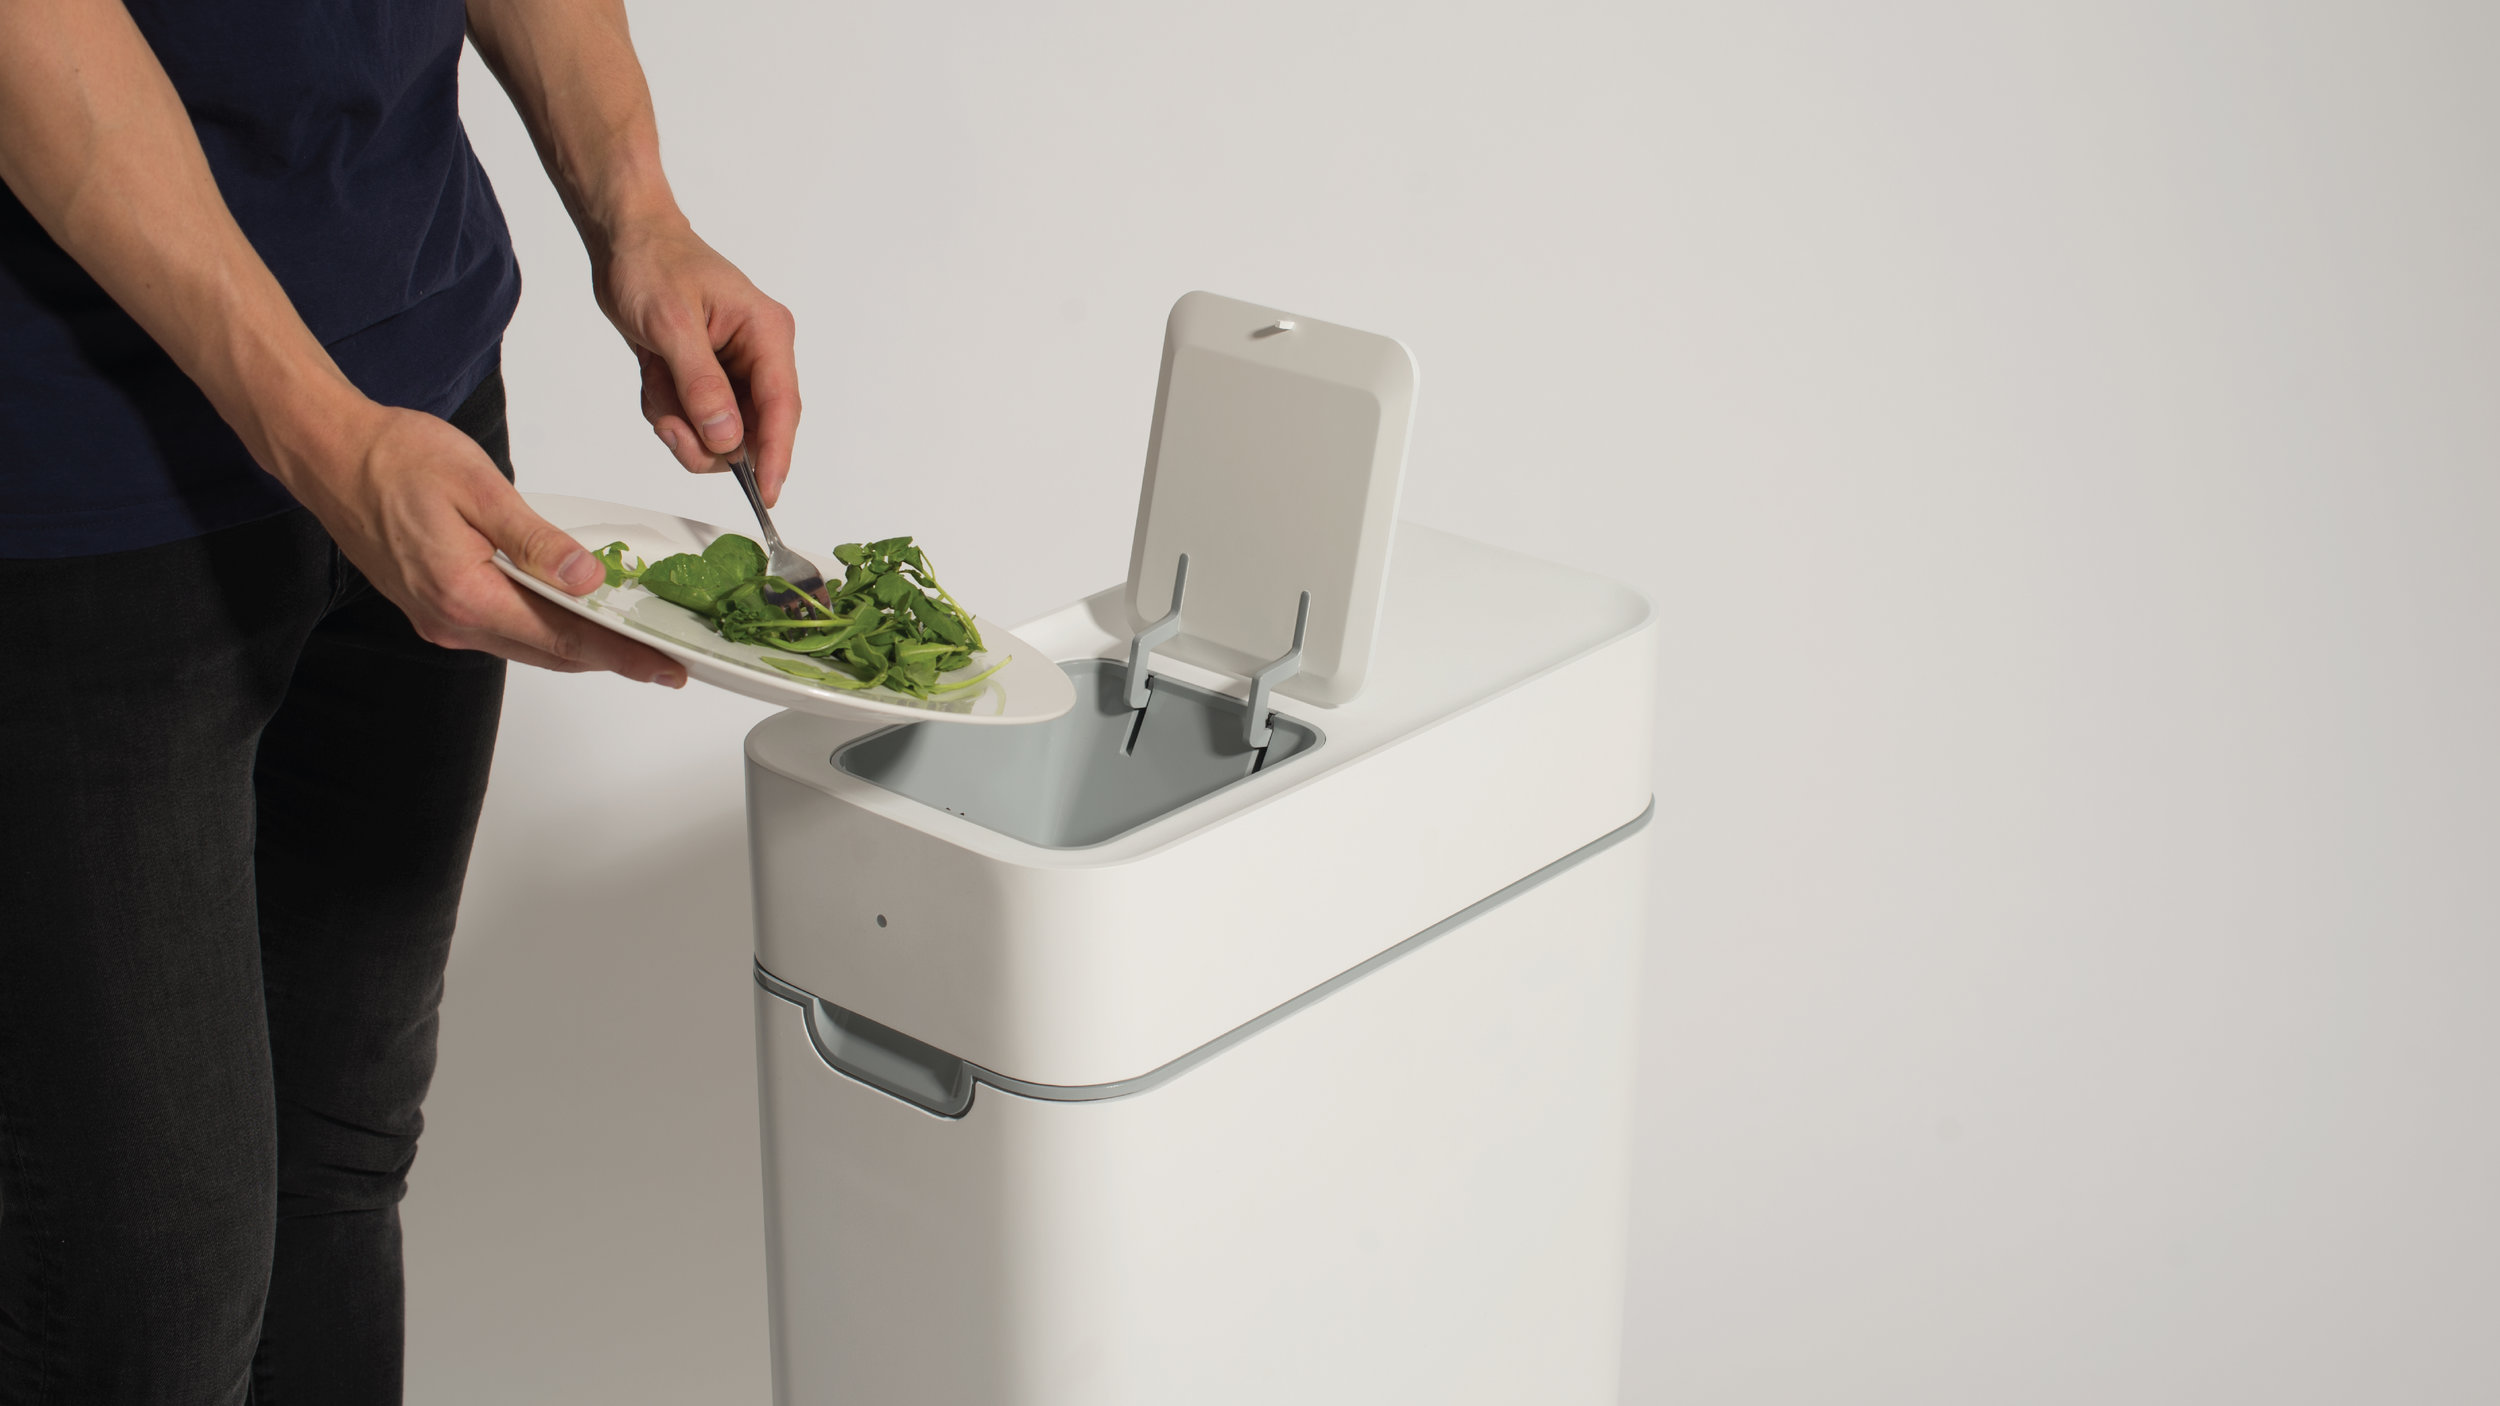 This kitchen compost bin ferments your kitchen waste